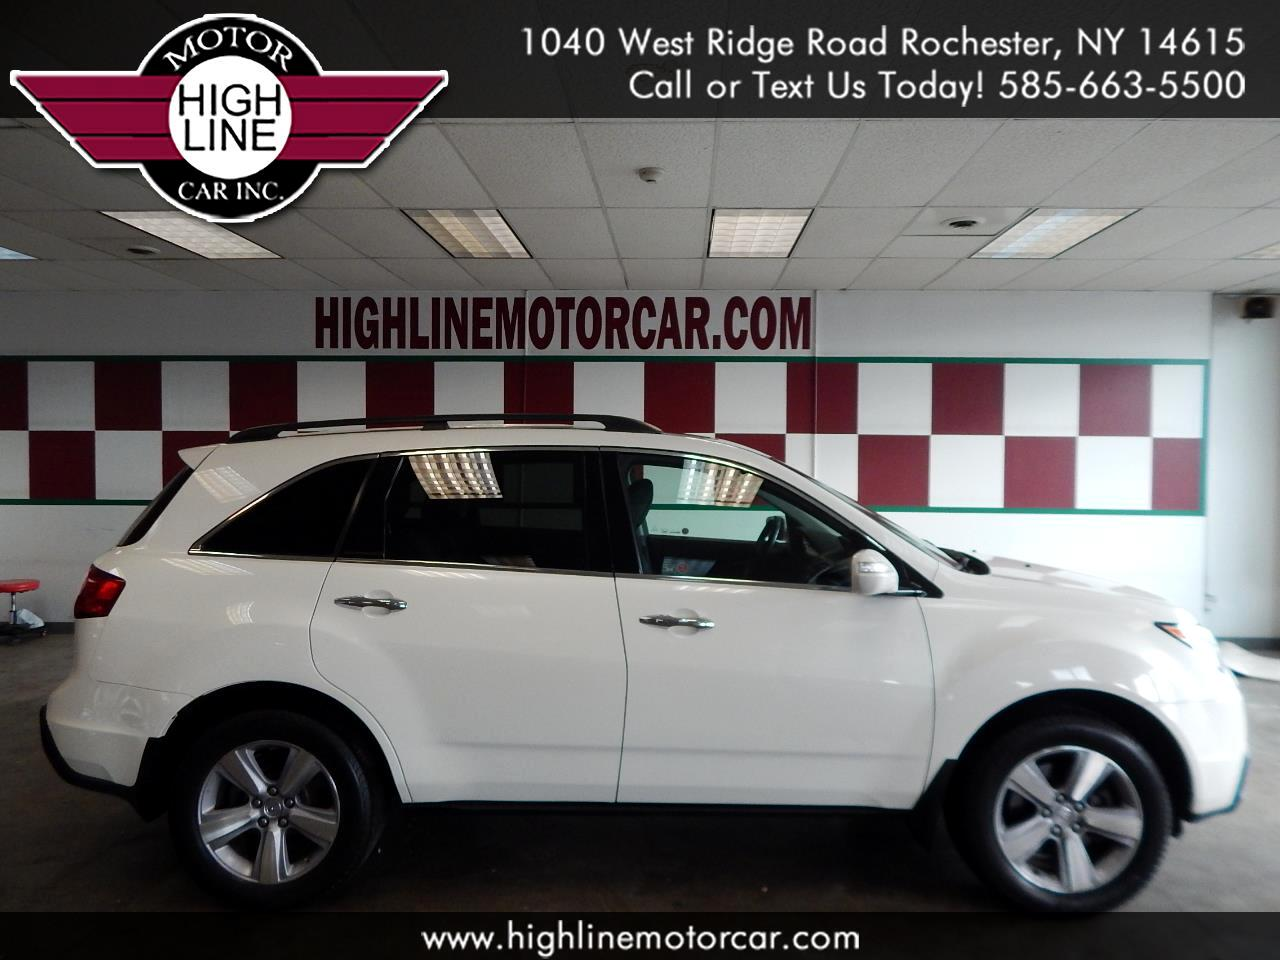 2011 Acura MDX 4dr SUV AT Touring RES w/Navi